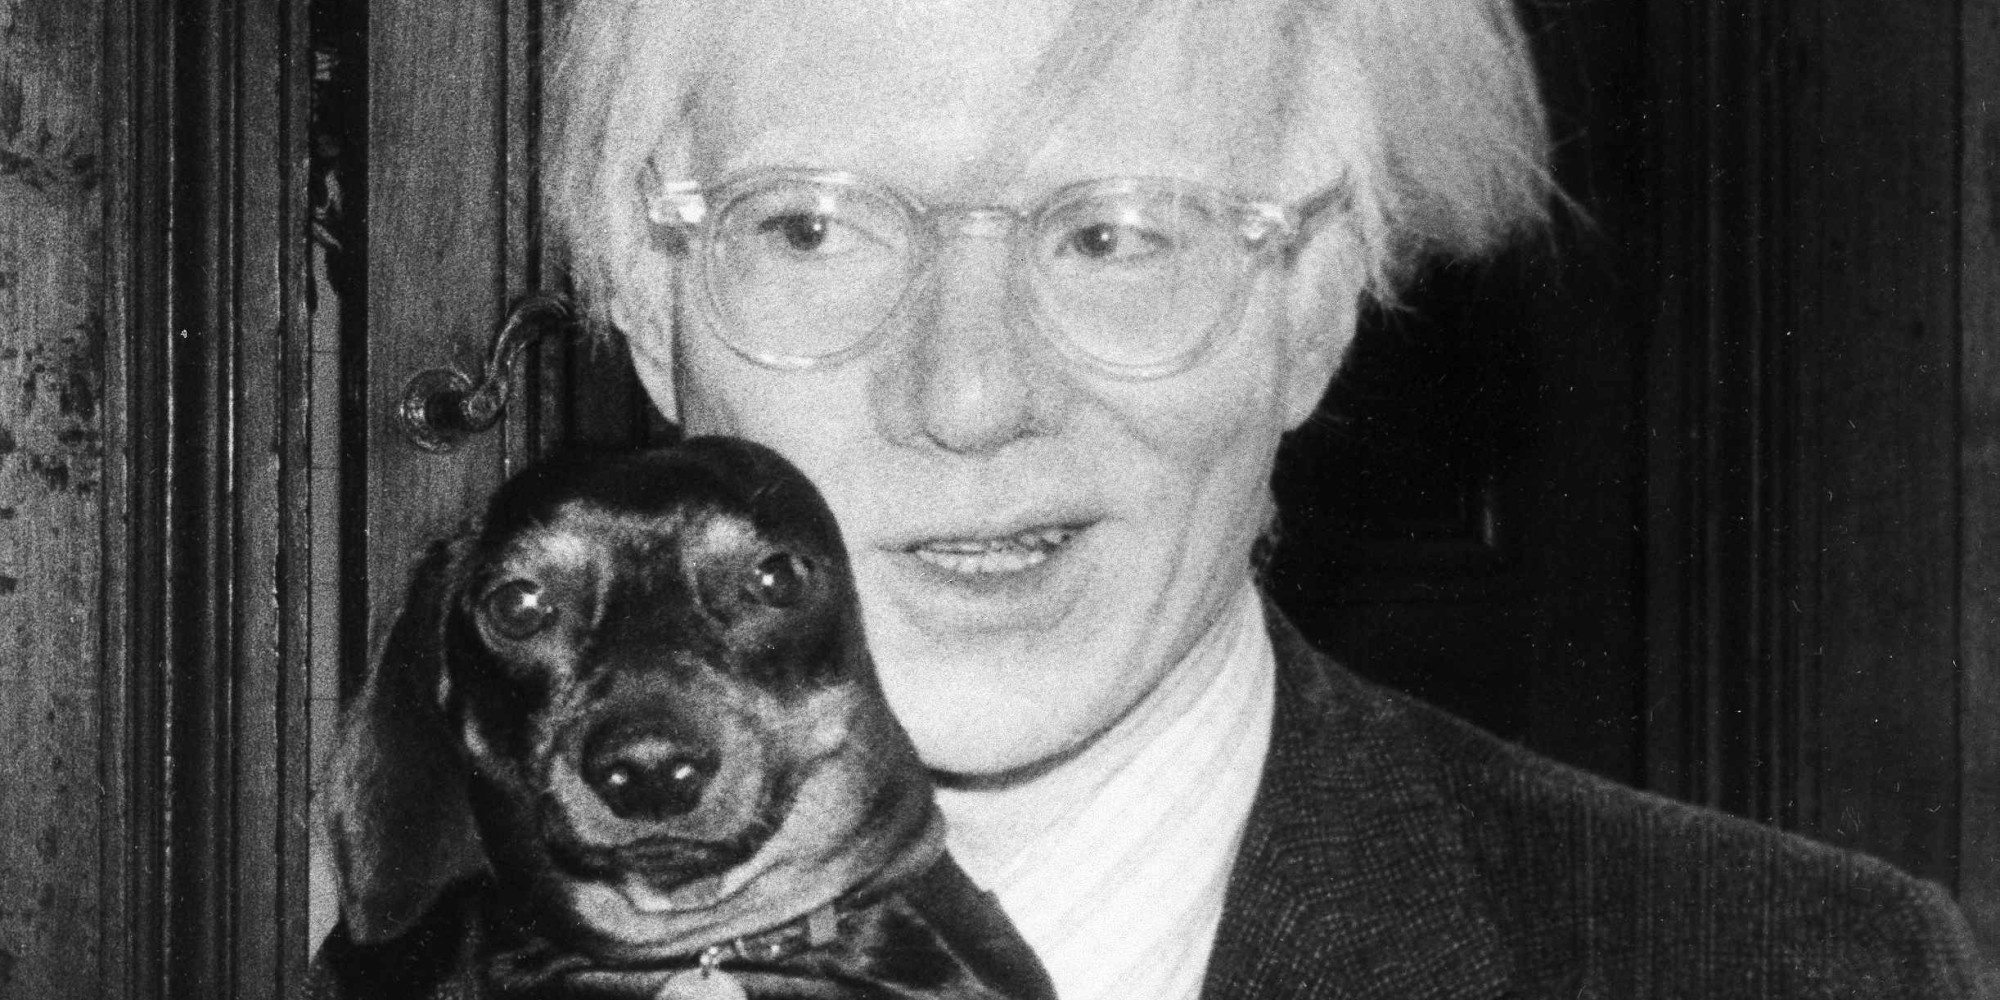 Andy Warhol Andy Warhol Made A Mistake That Resulted In Some Of His